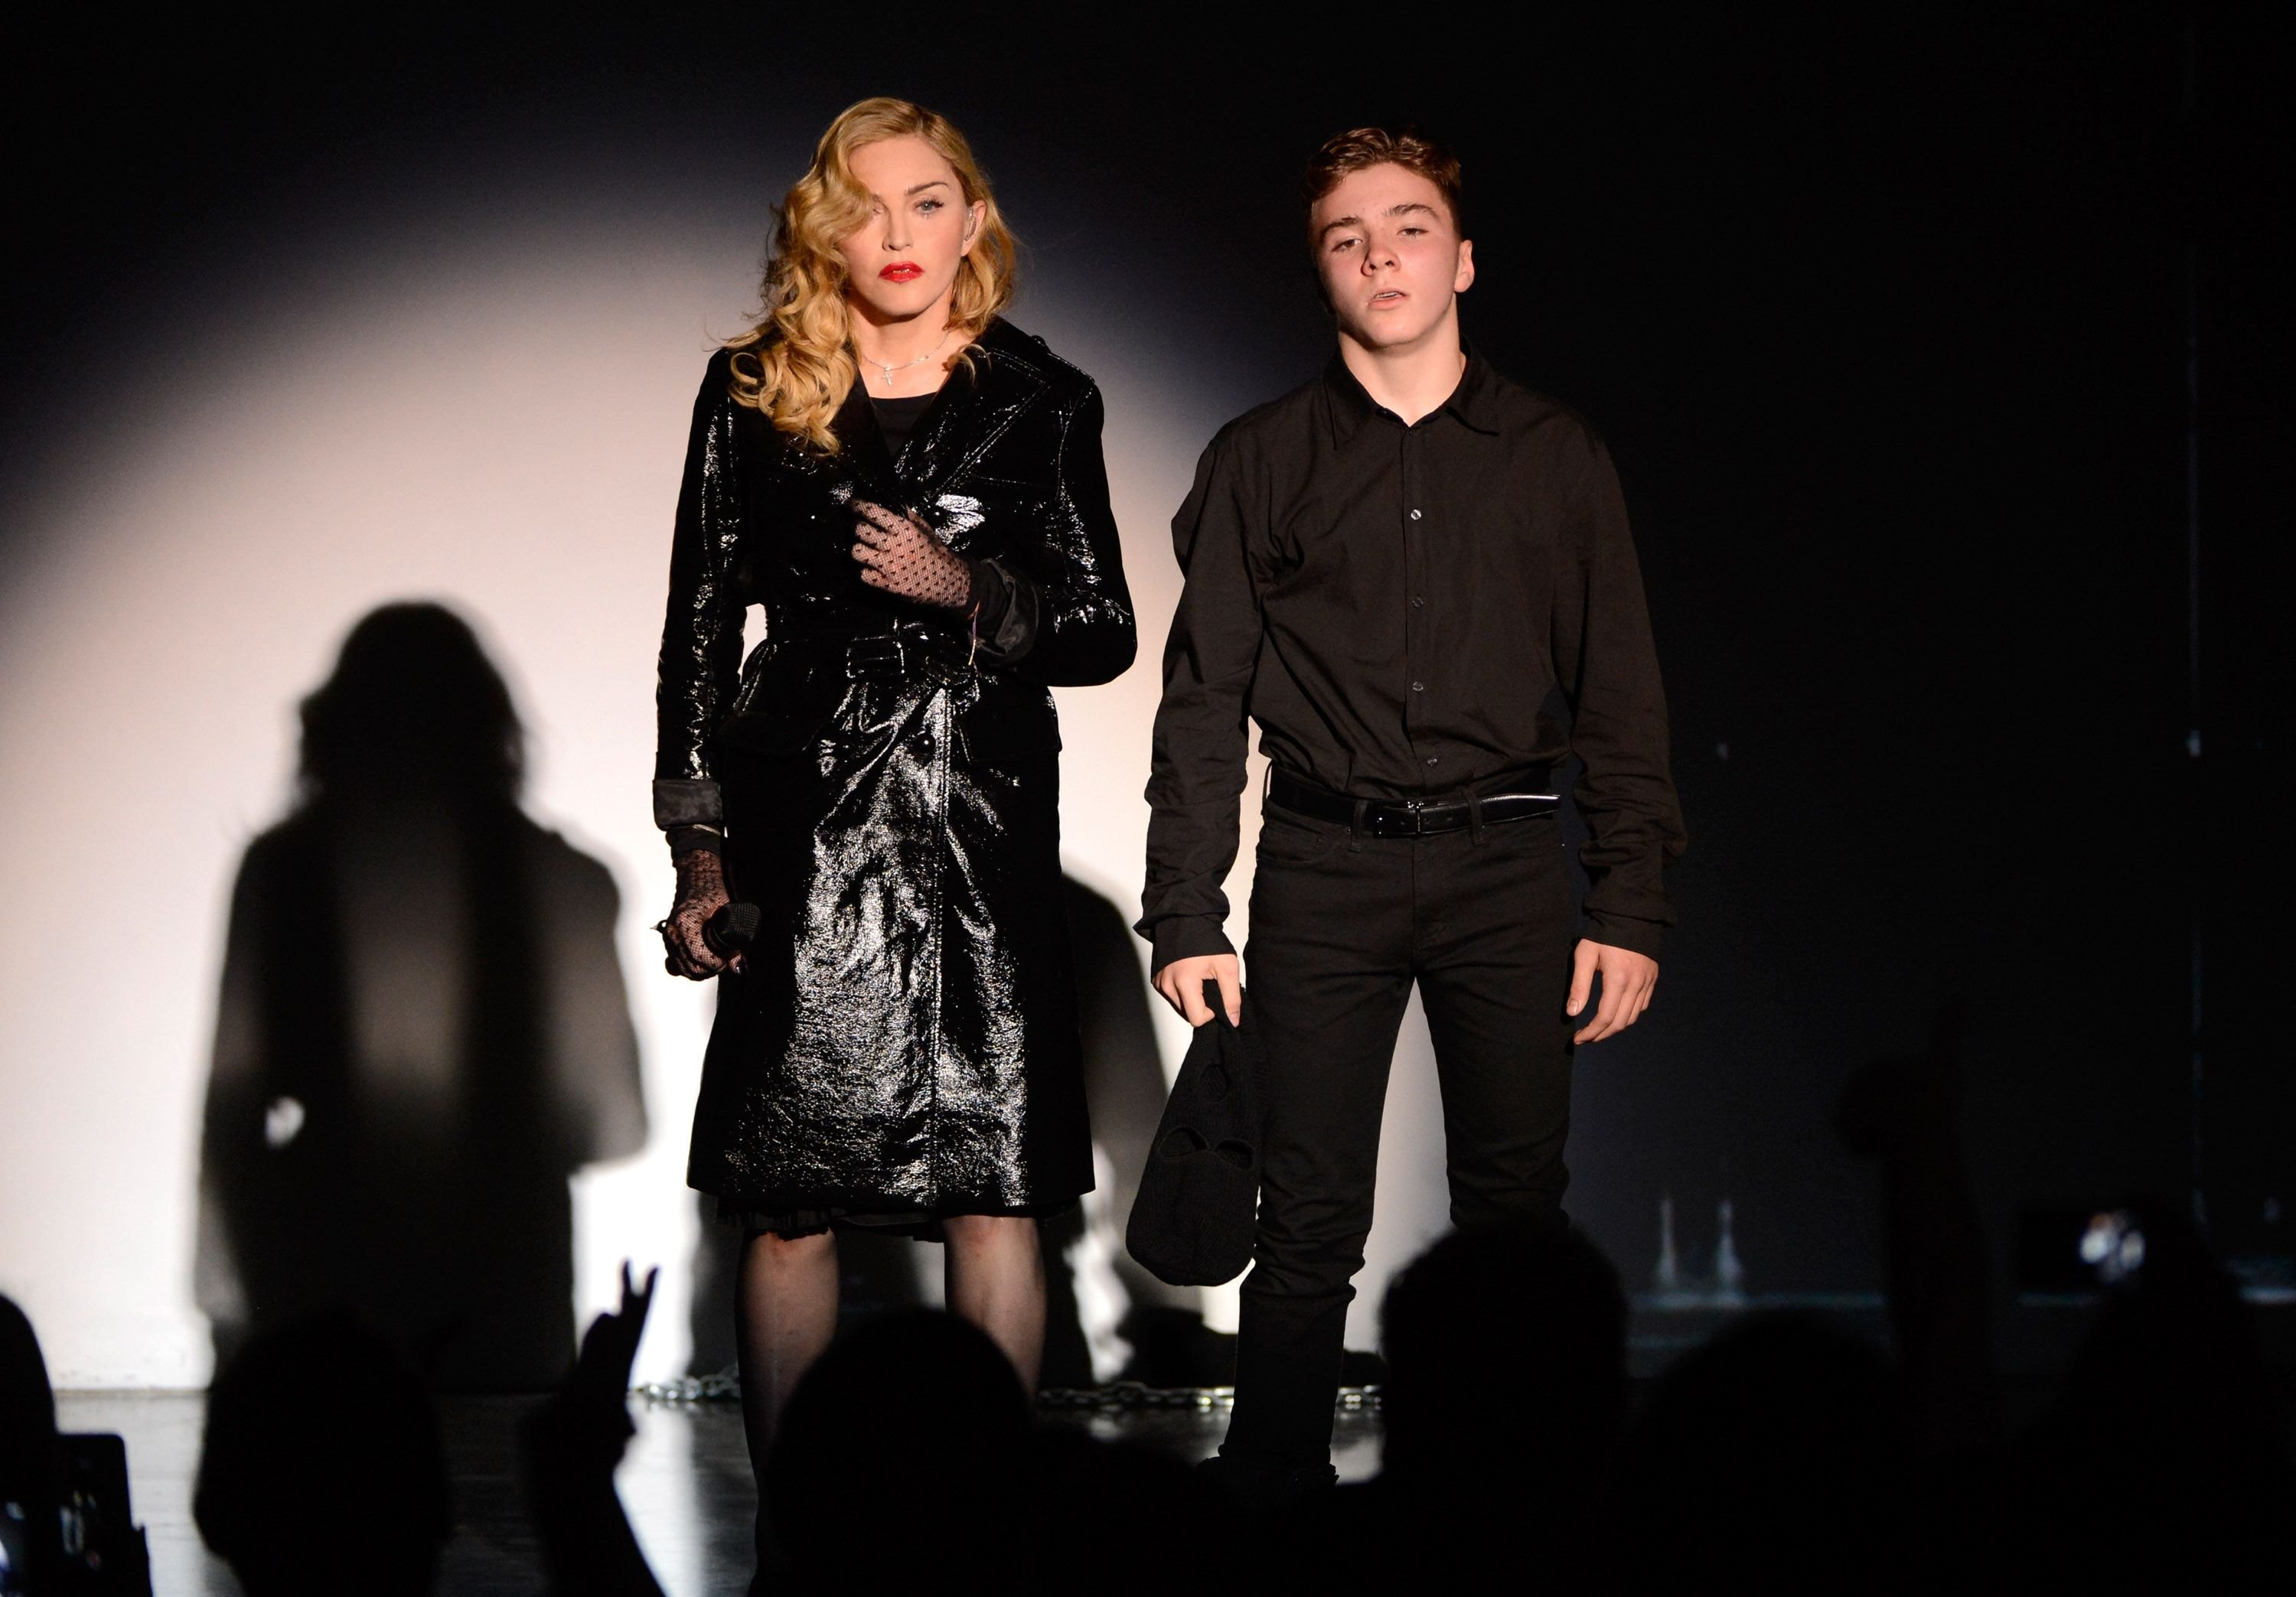 Madonna and Rocco Ritchie at the Gagosian Gallery in September 2013 in New York City | Source: Getty Images